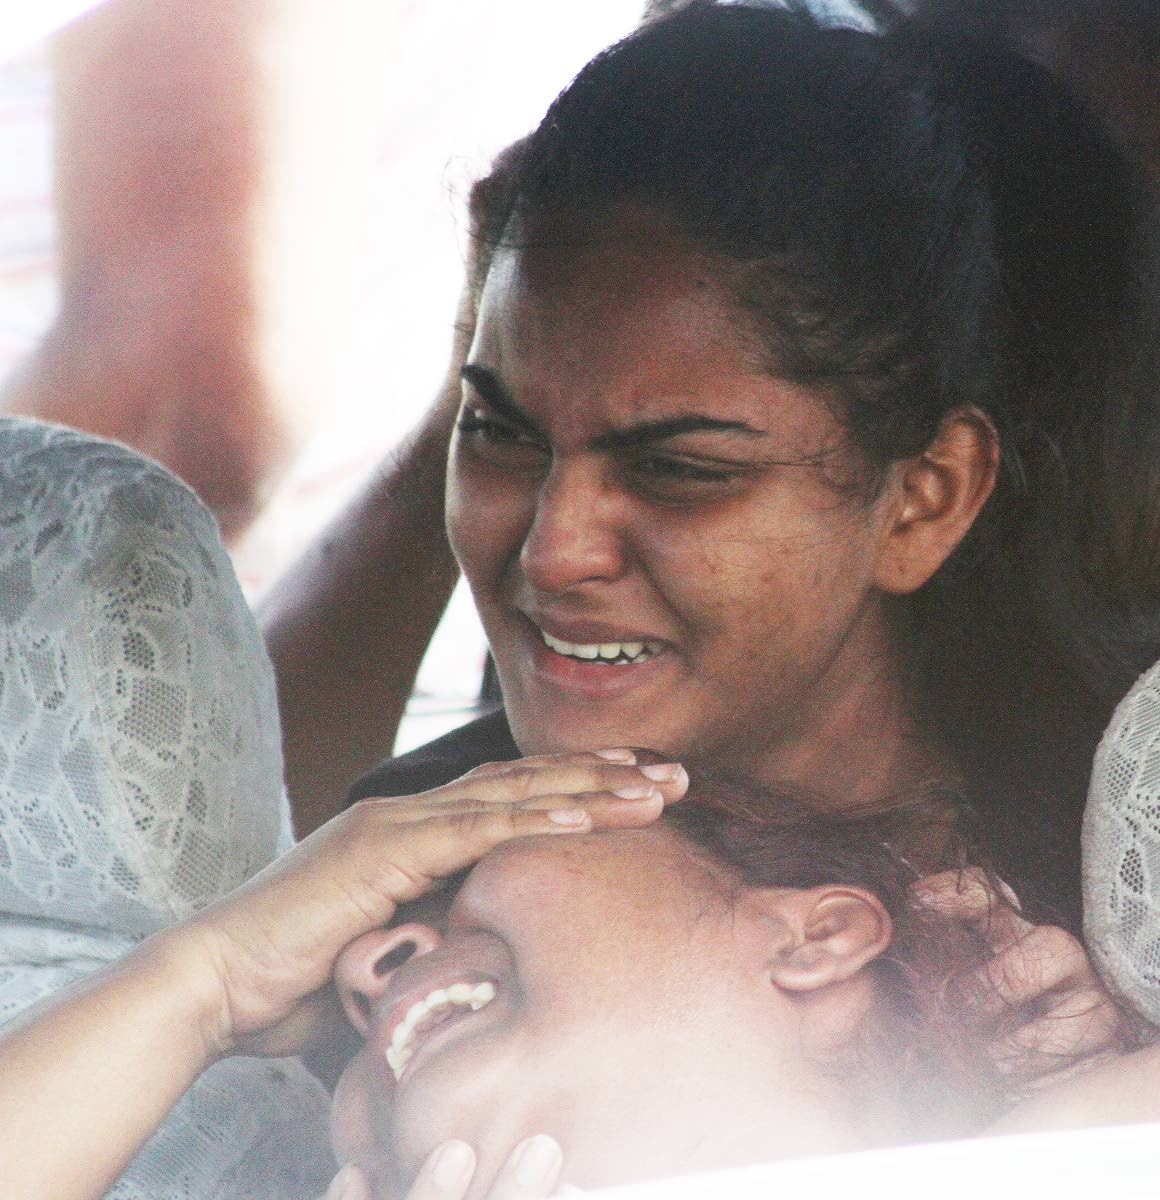 SUNDAY SORROW:Shivana Roodal, top, consoles her weeping mother Maltie yesterday after the body of Shivana's father and Maltie's husband Pooran Roodal was found in his car with a stab wound to his neck in Kelly Village, Caroni.